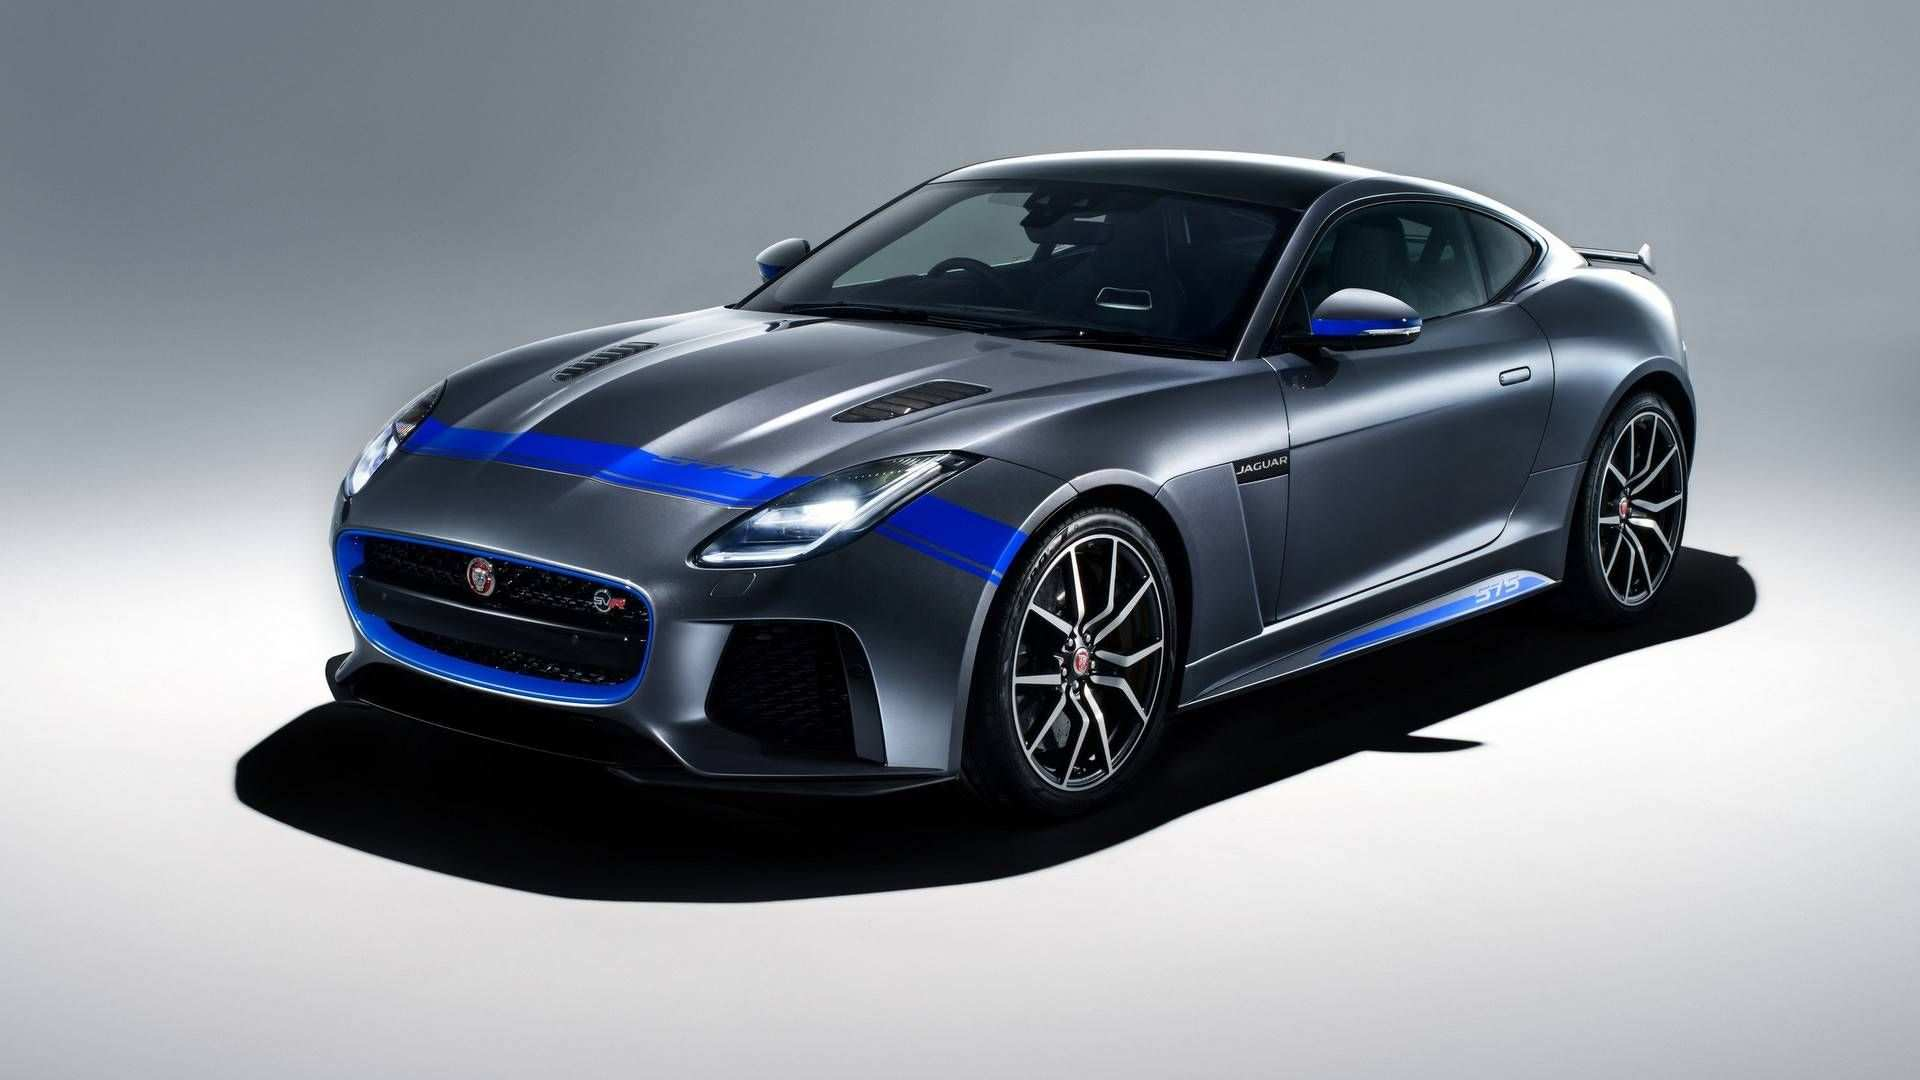 76 The 2020 Jaguar F Type New Concept Research New by 2020 Jaguar F Type New Concept